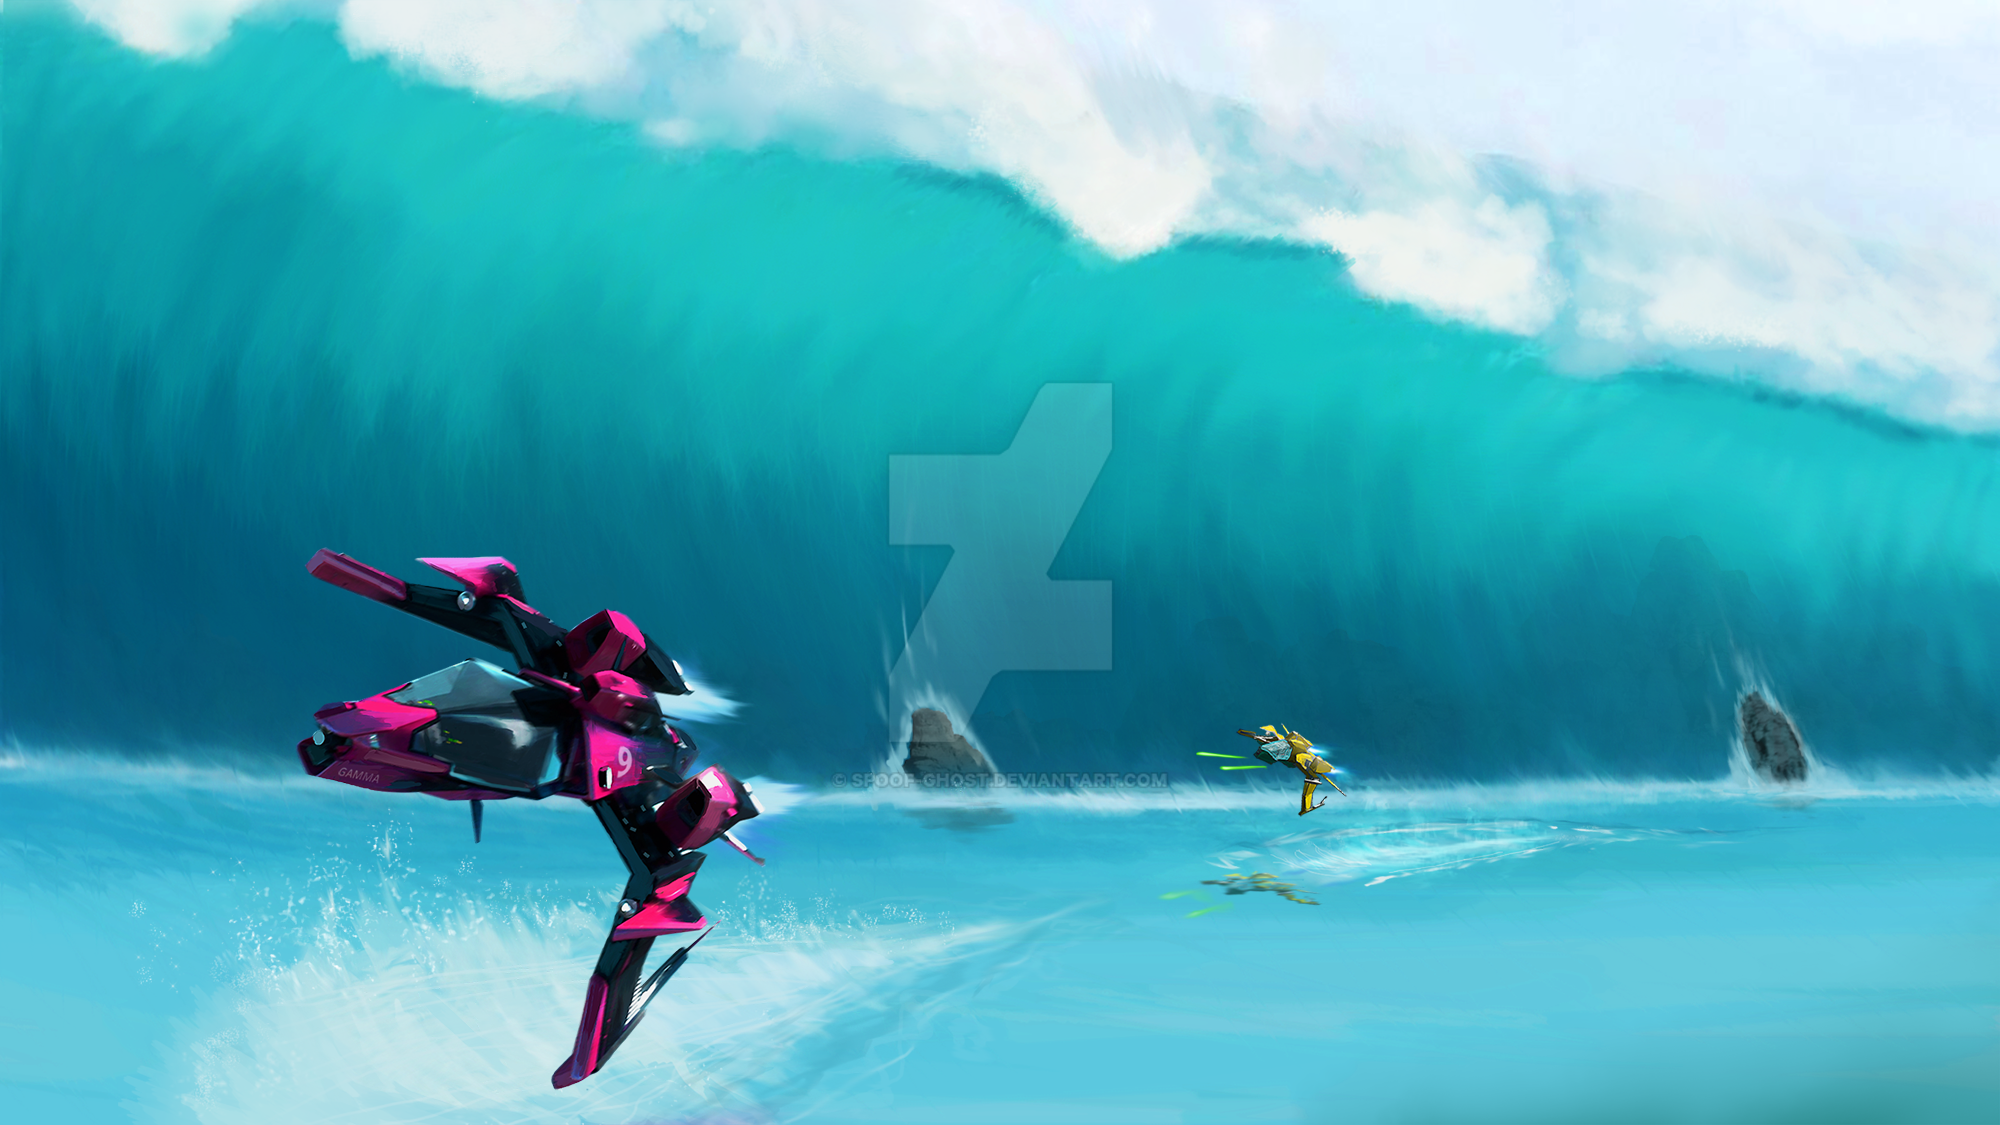 race_water_v3_by_spoof_ghost-dajztcj.png